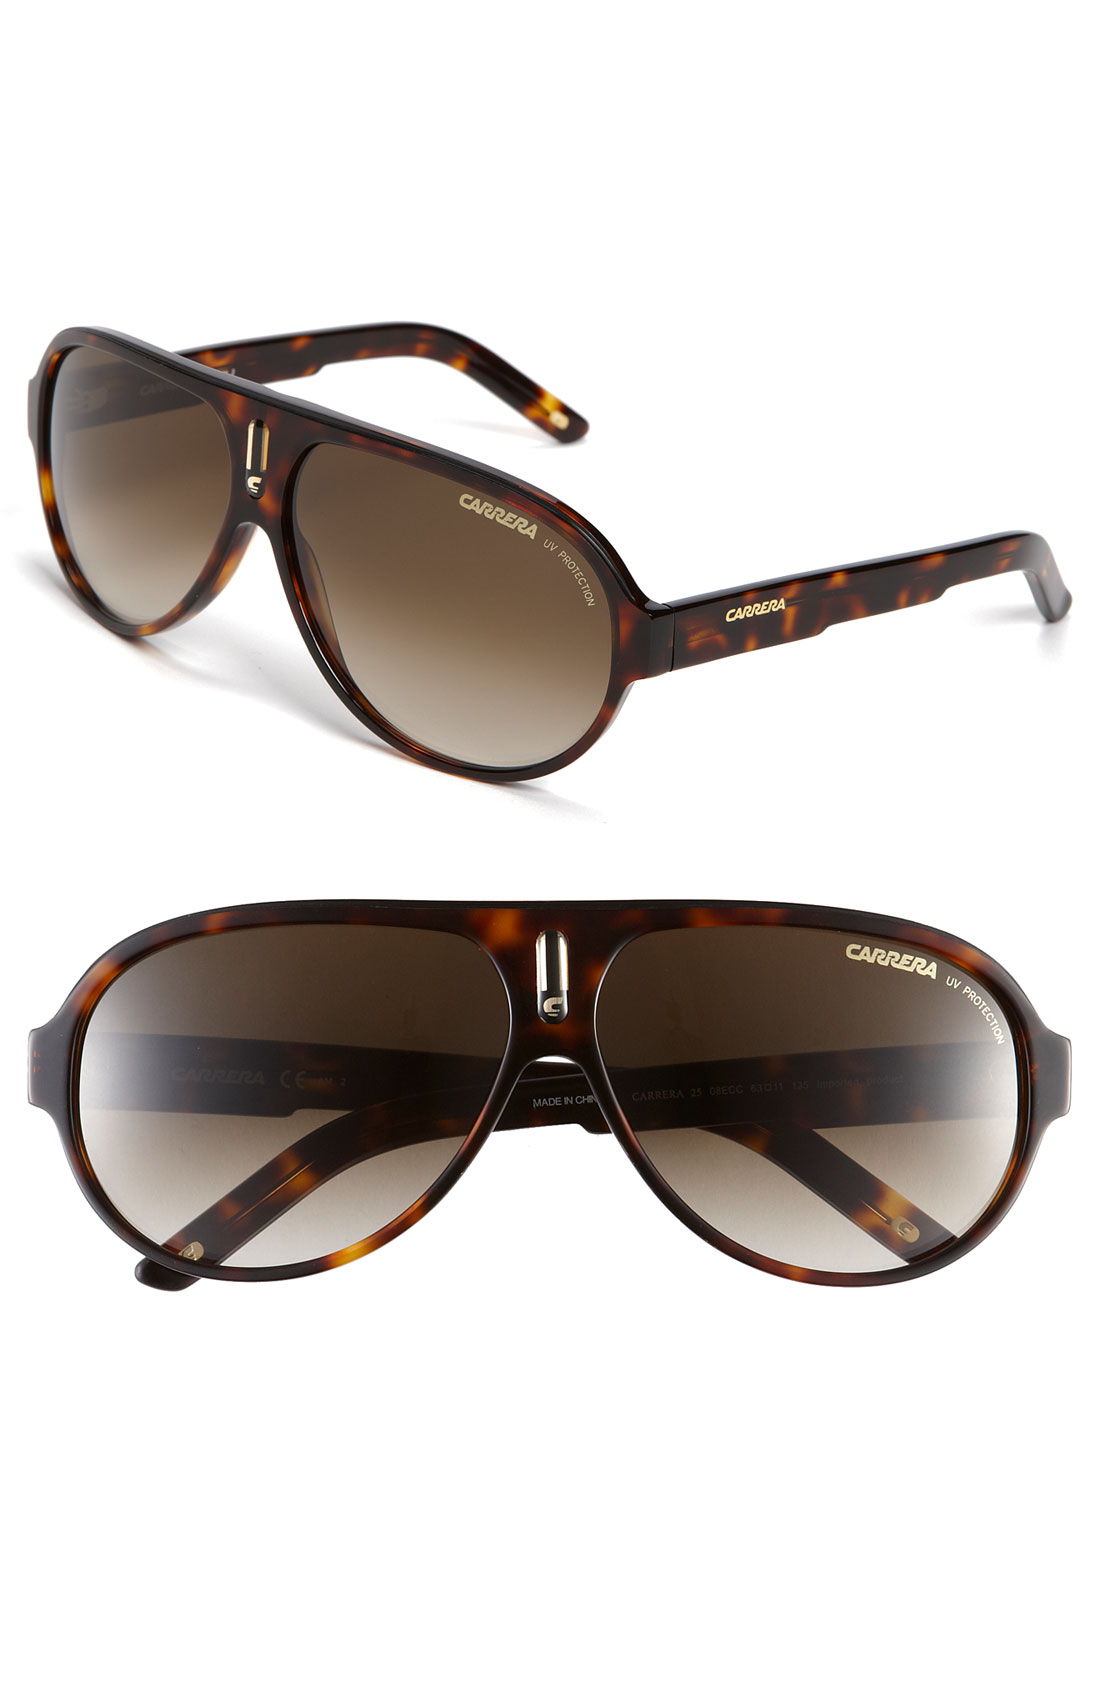 Carrera Women S Sunglasses  women s carrera sunglasses global business forum iitbaa